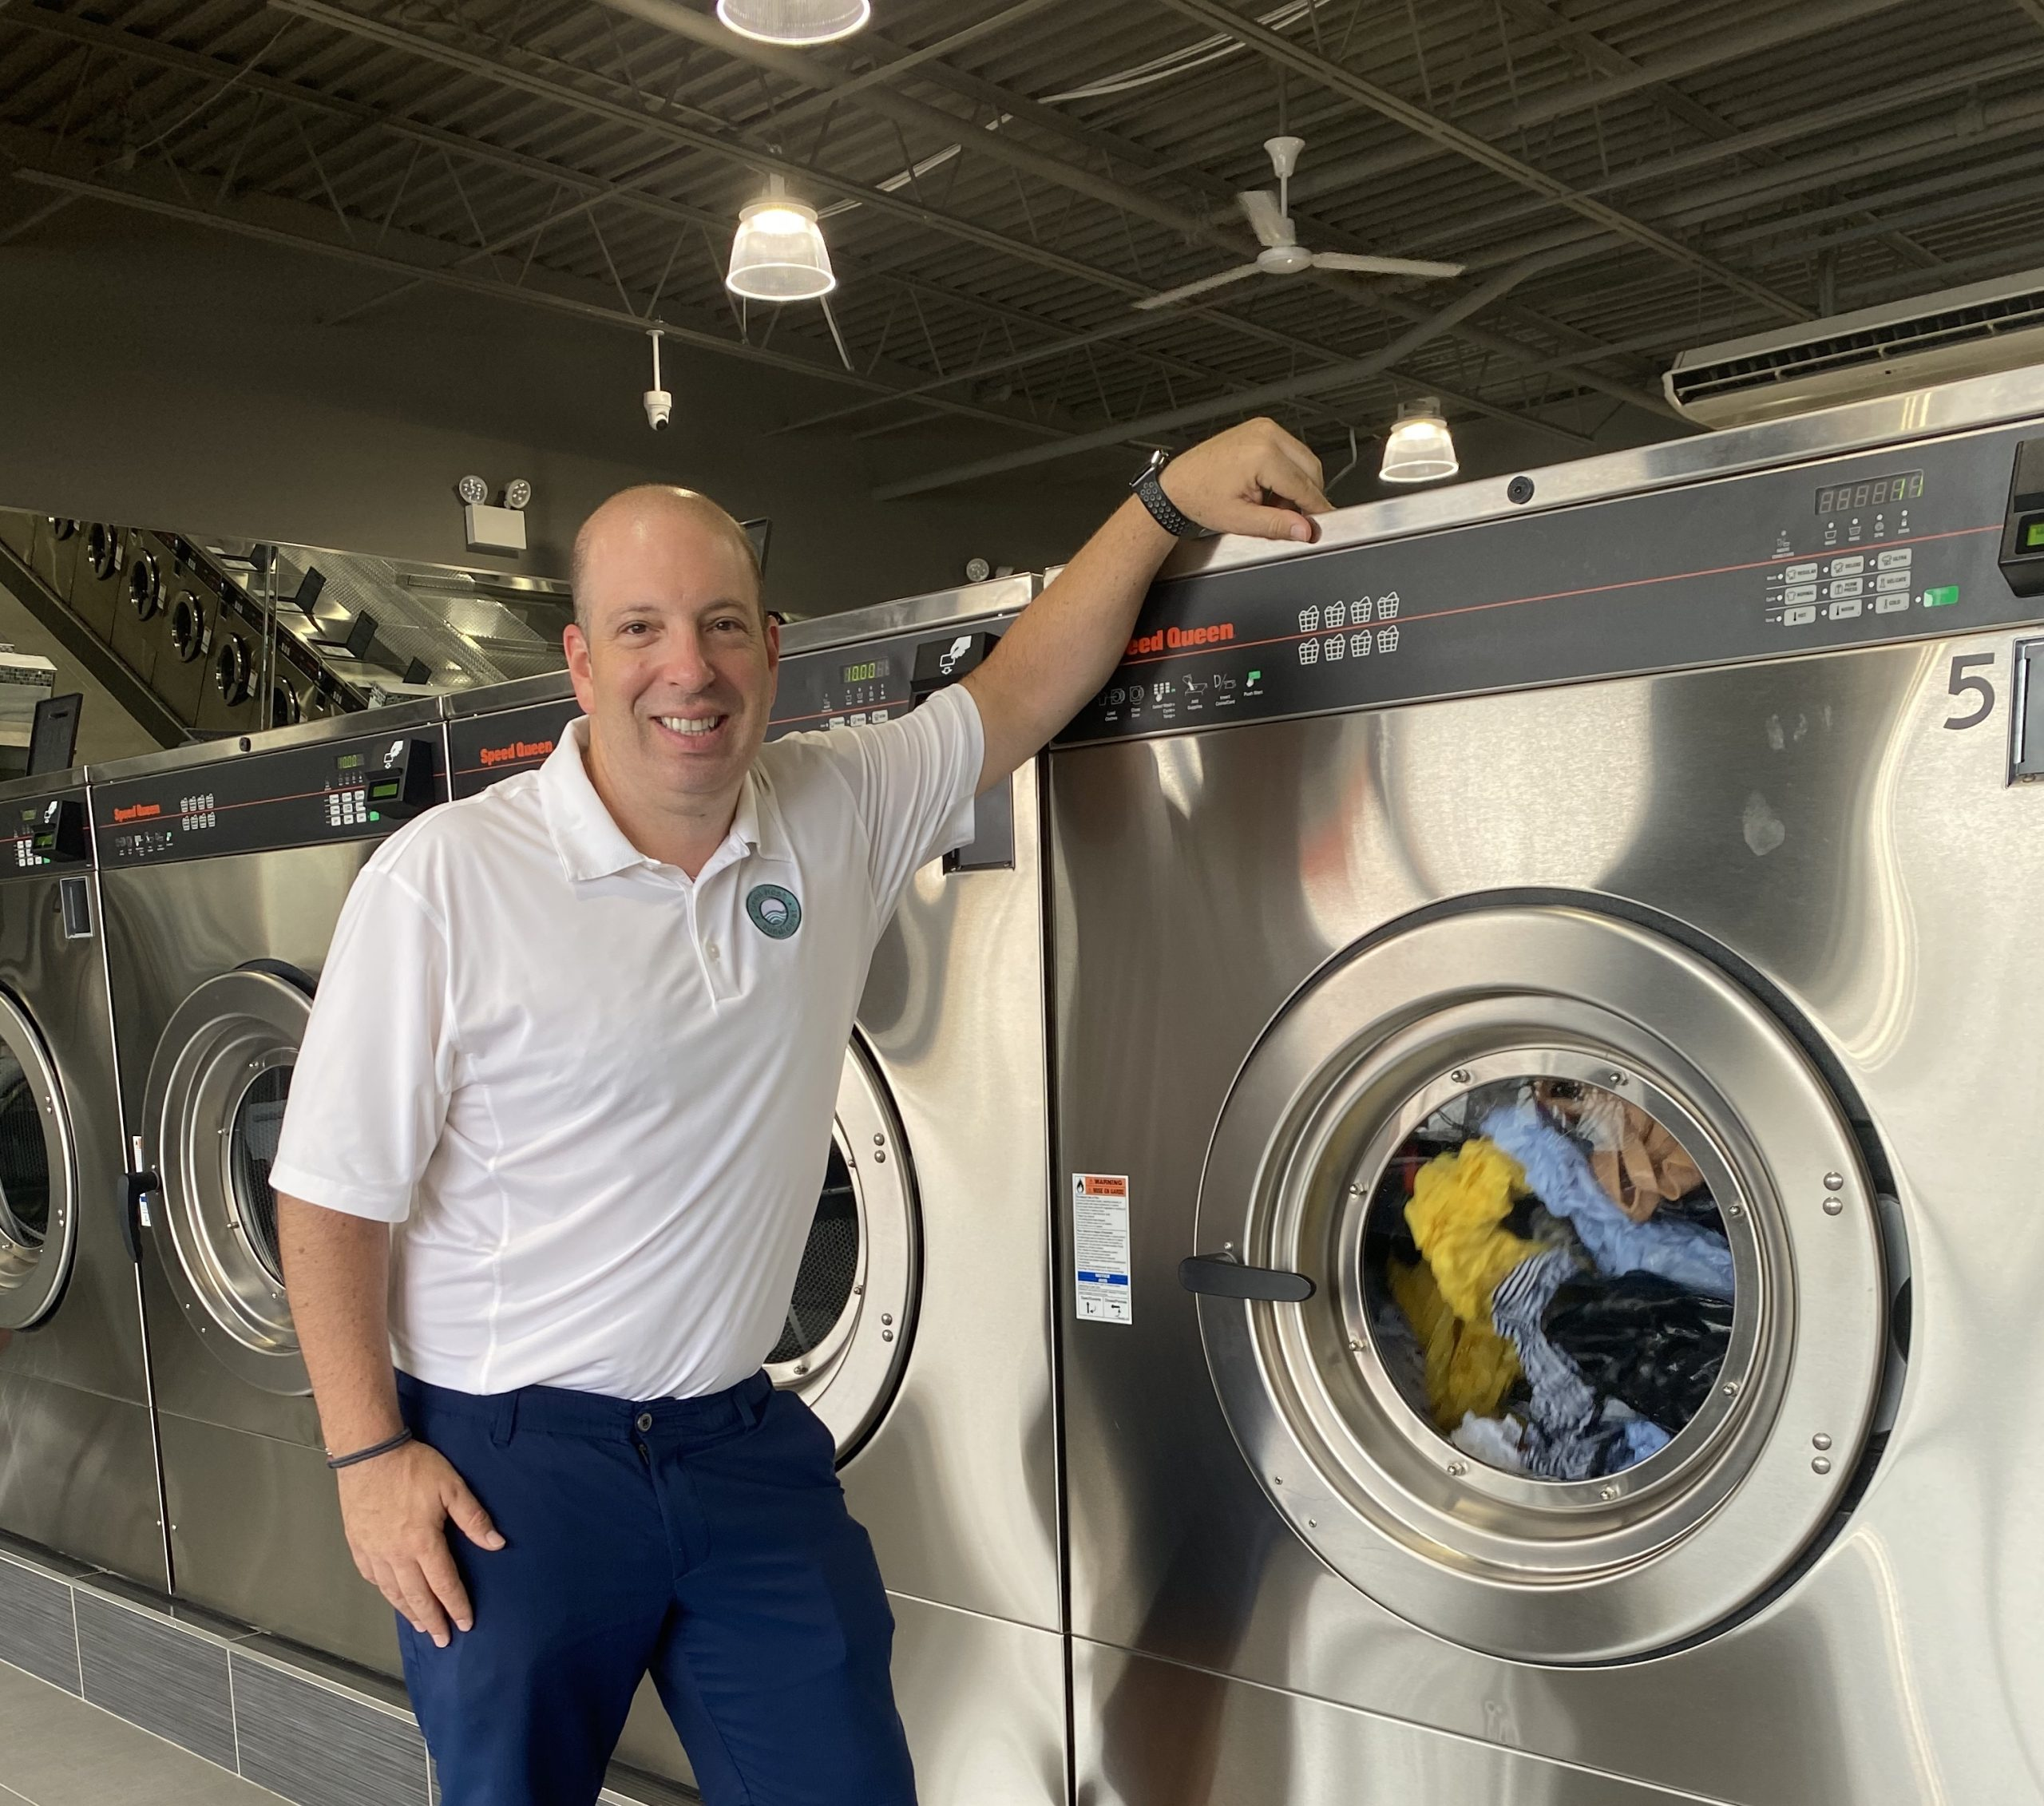 Stephen Gramaglia of CleanFresh Laundry Happy with Metropolitan Laundry Service